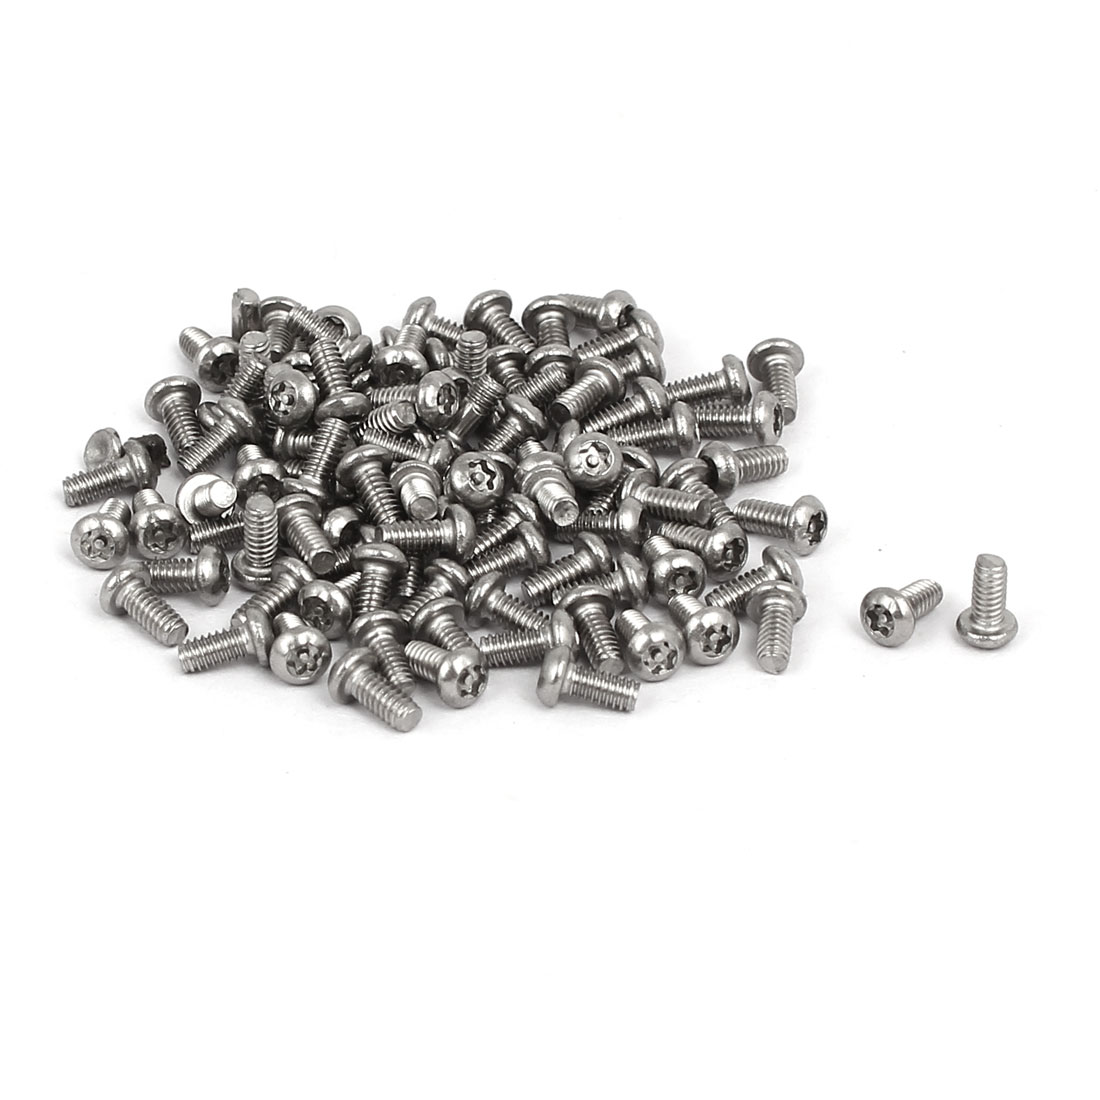 M2x4mm 304 Stainless Steel Button Head Torx Security Machine Screws 100pcs